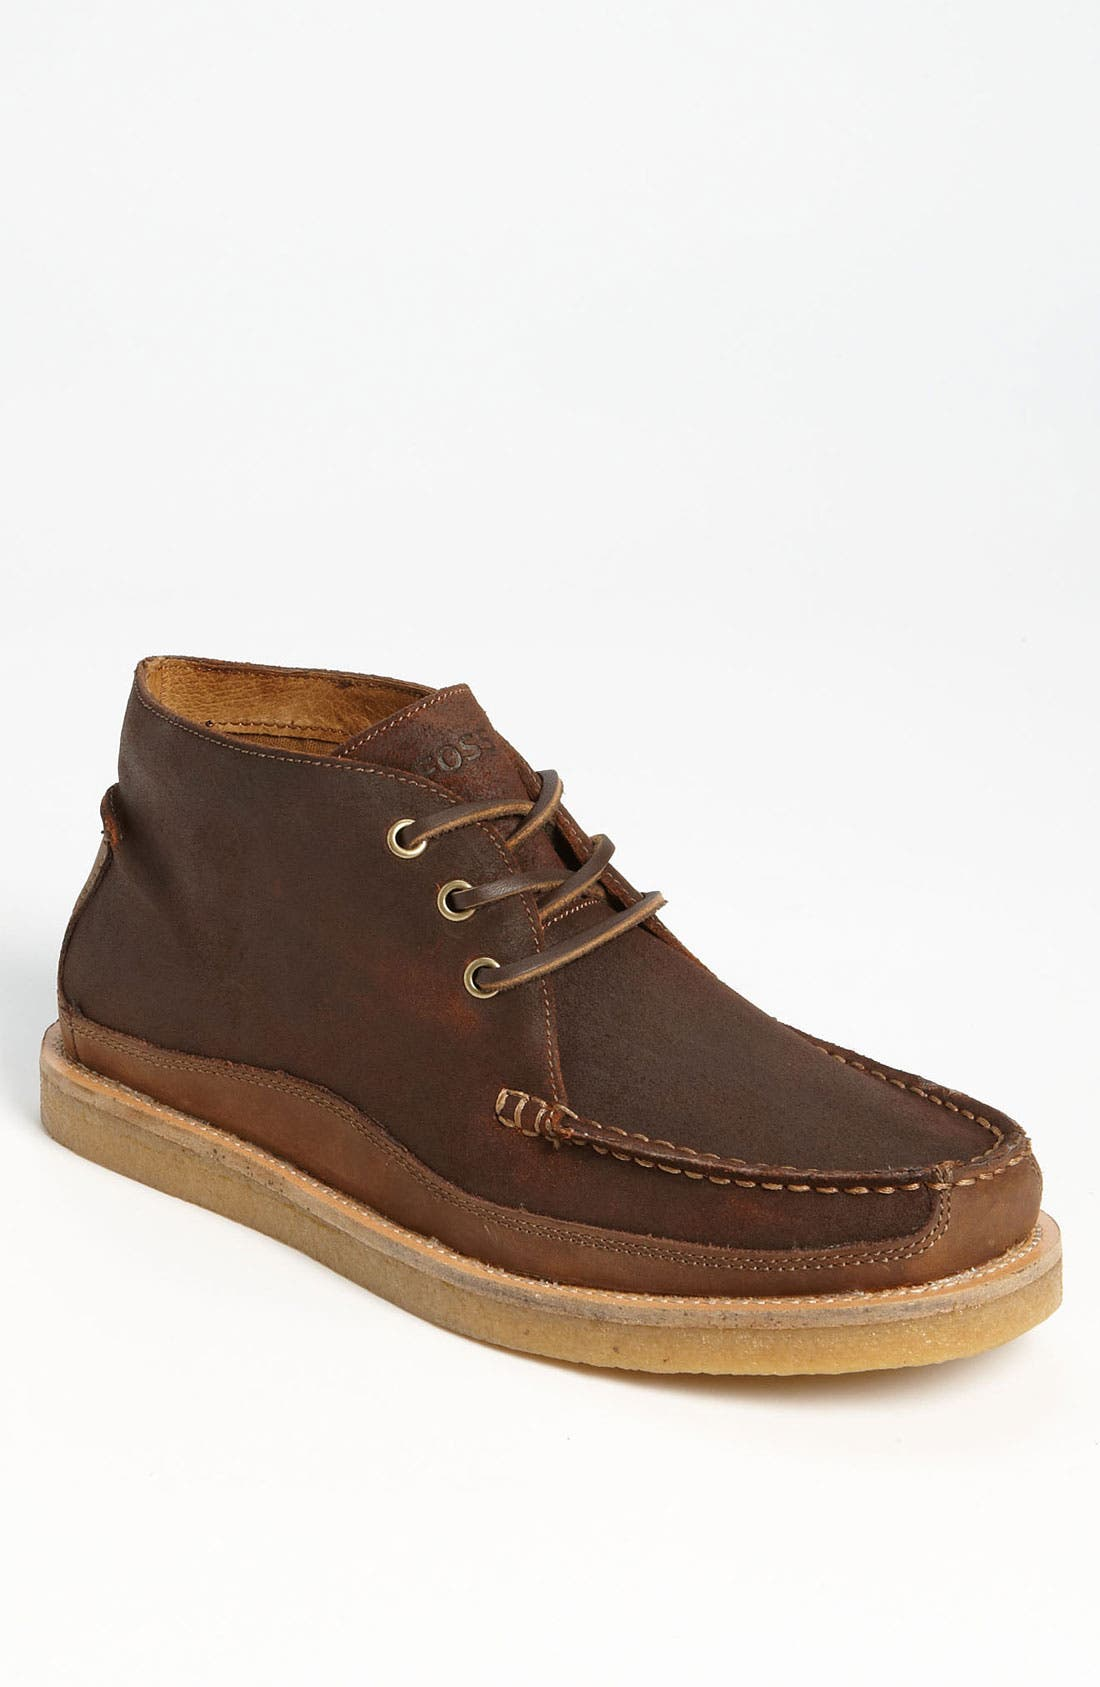 Alternate Image 1 Selected - Fossil 'Pueblo' Chukka Boot